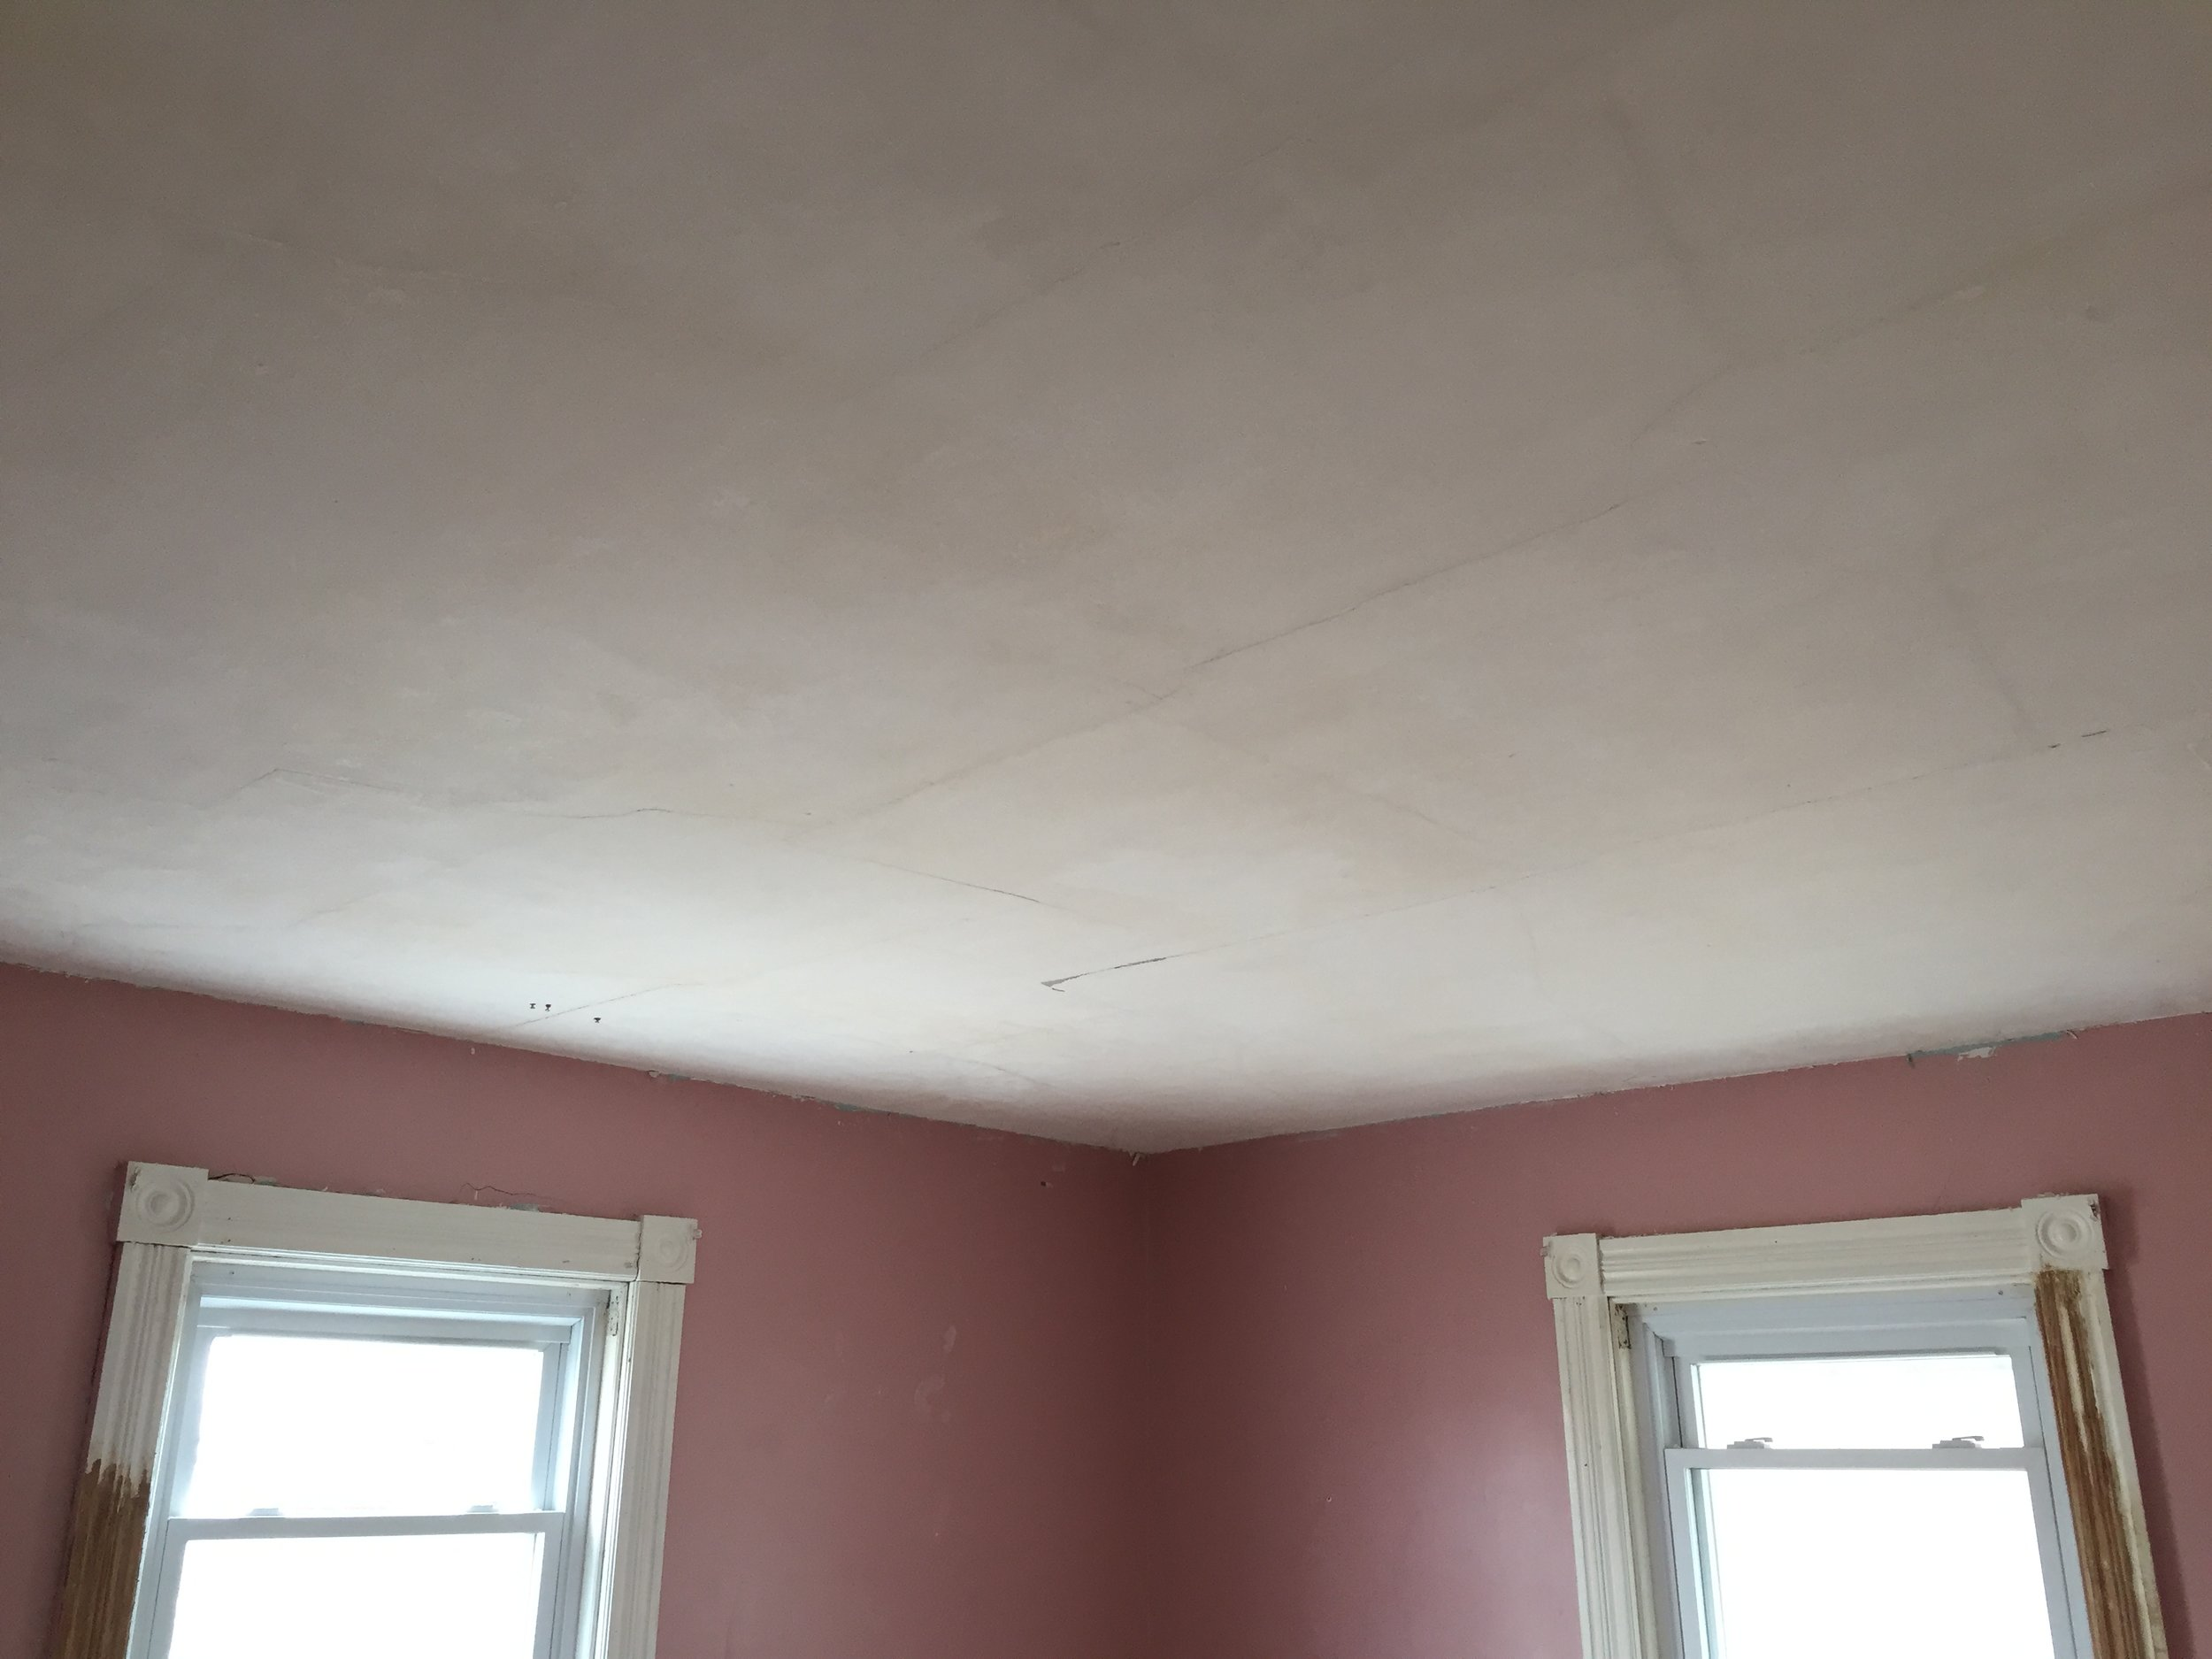 Ceiling is getting clean. All popcorn removed and now can see the original plaster.